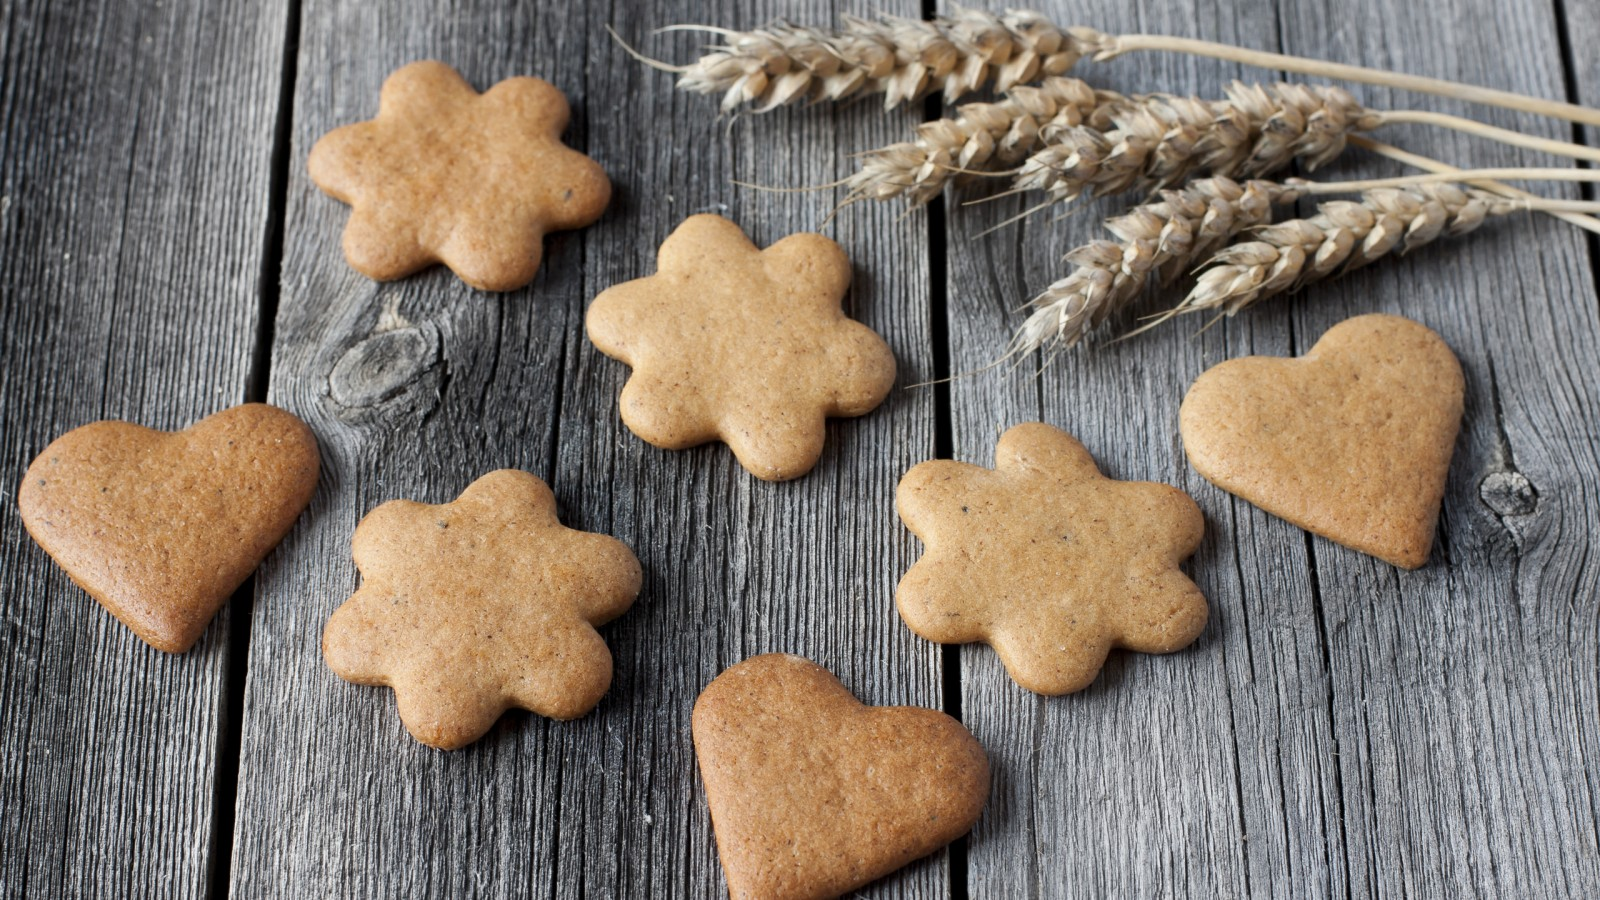 Сочельник в Финляндии http://travelcalendar.ru/wp-content/uploads/2015/12/Gingerbreads-1600x900.jpg